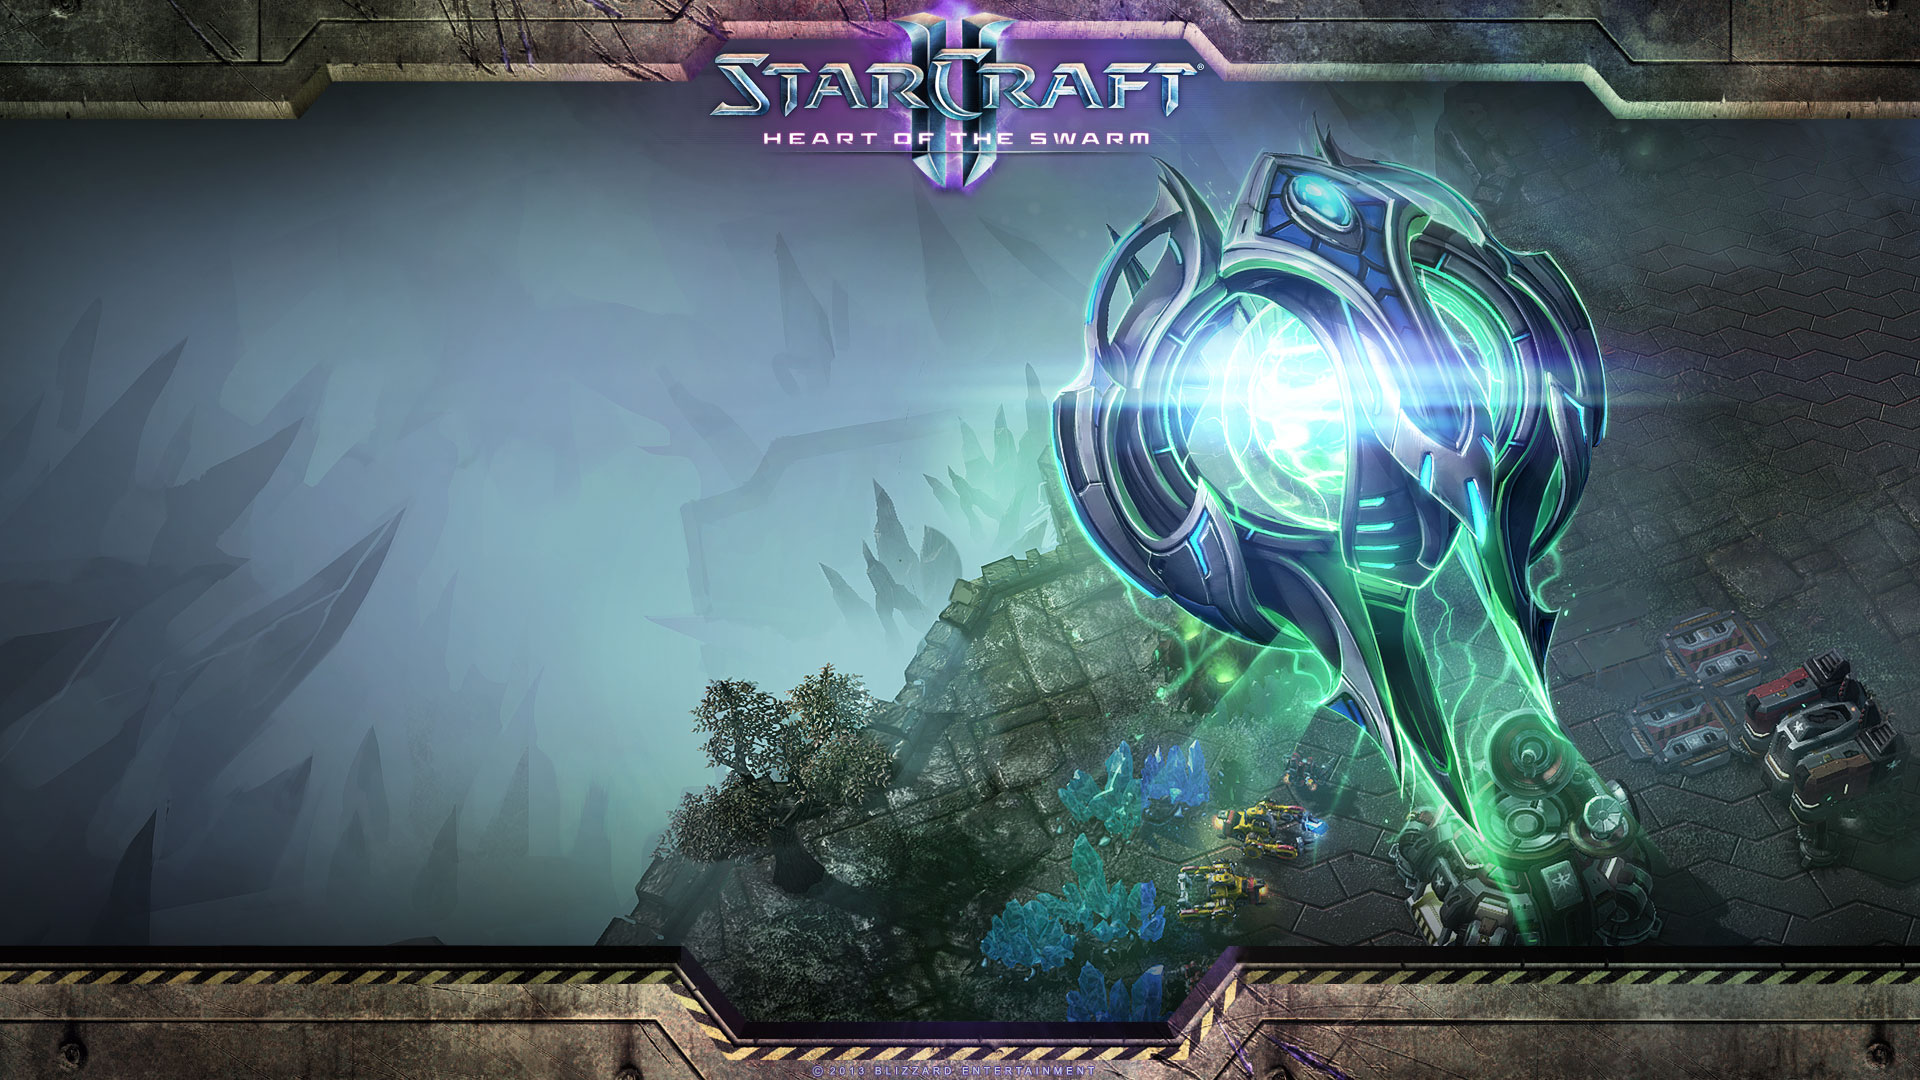 Starcraft 2 Heart of the Swarm wallpaper 17